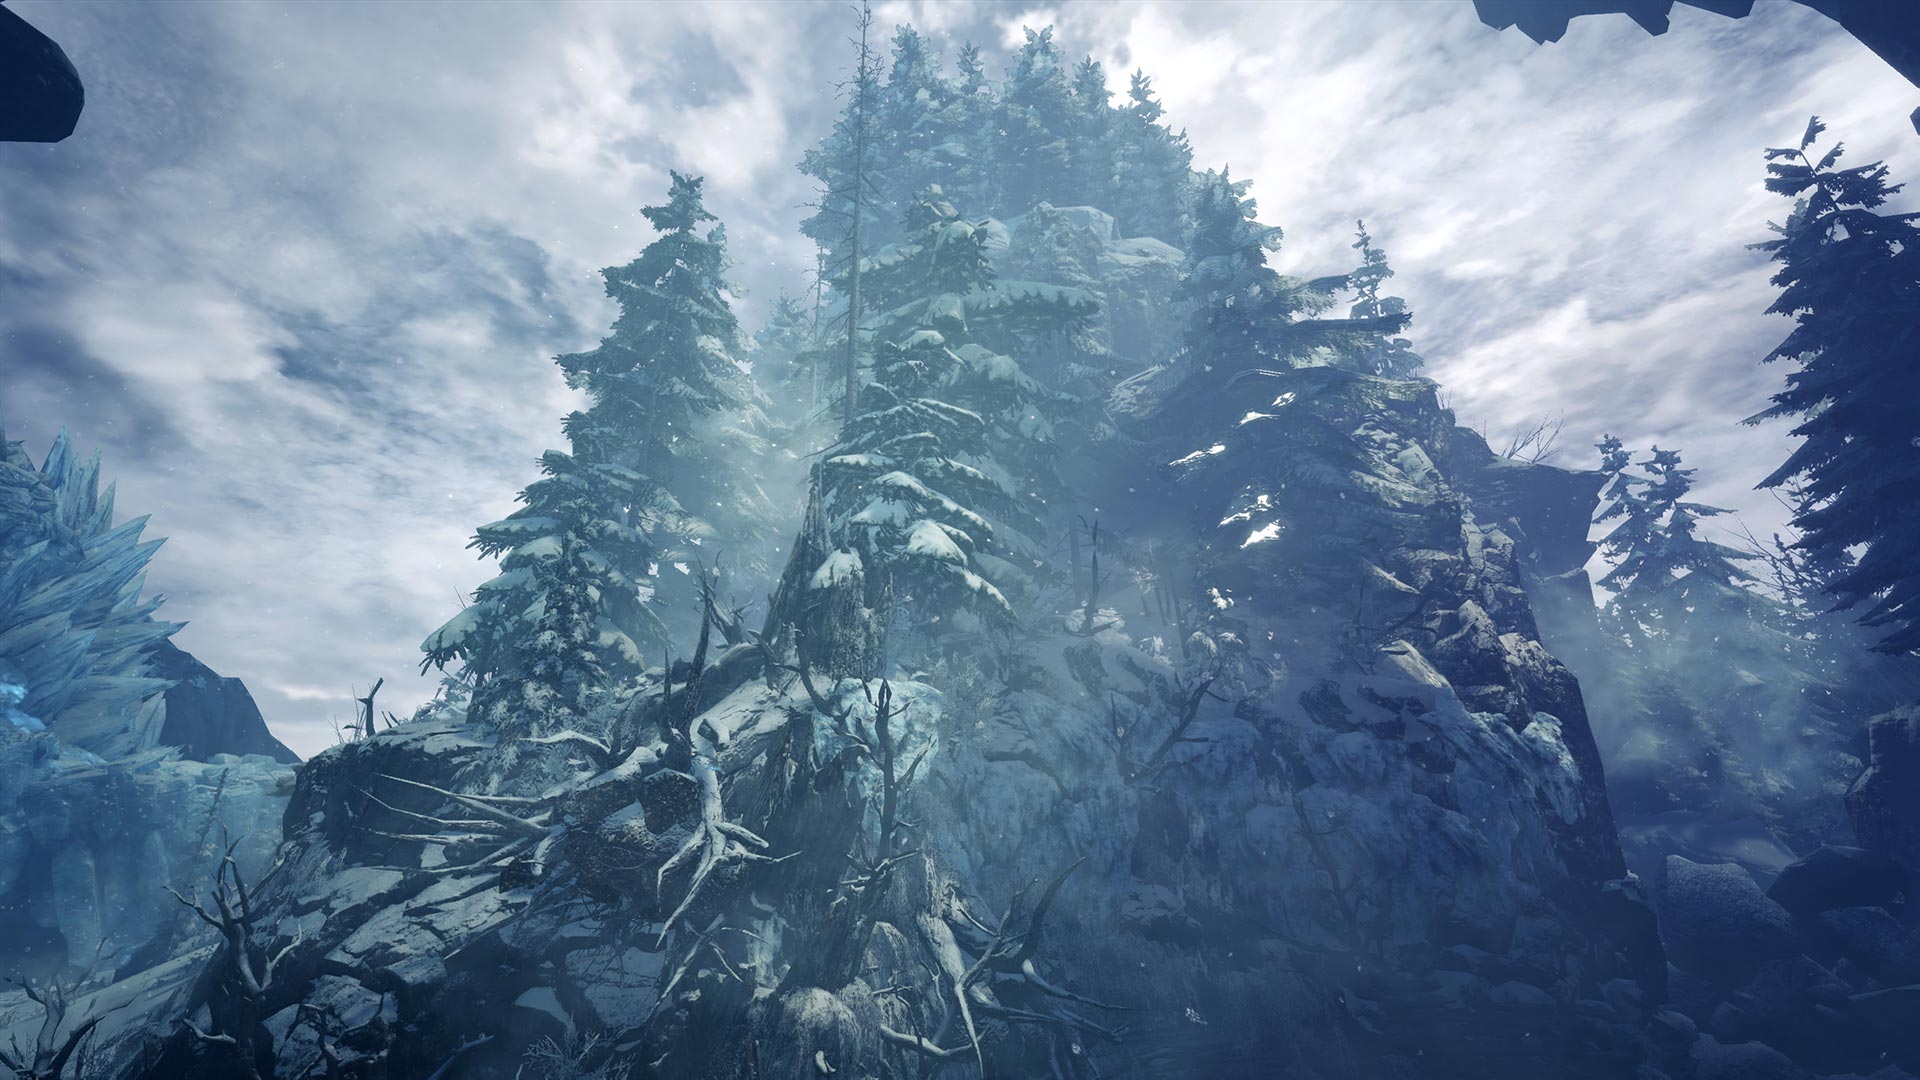 Monster Hunter World: Iceborne revealed! Sets sail this year - GameAxis